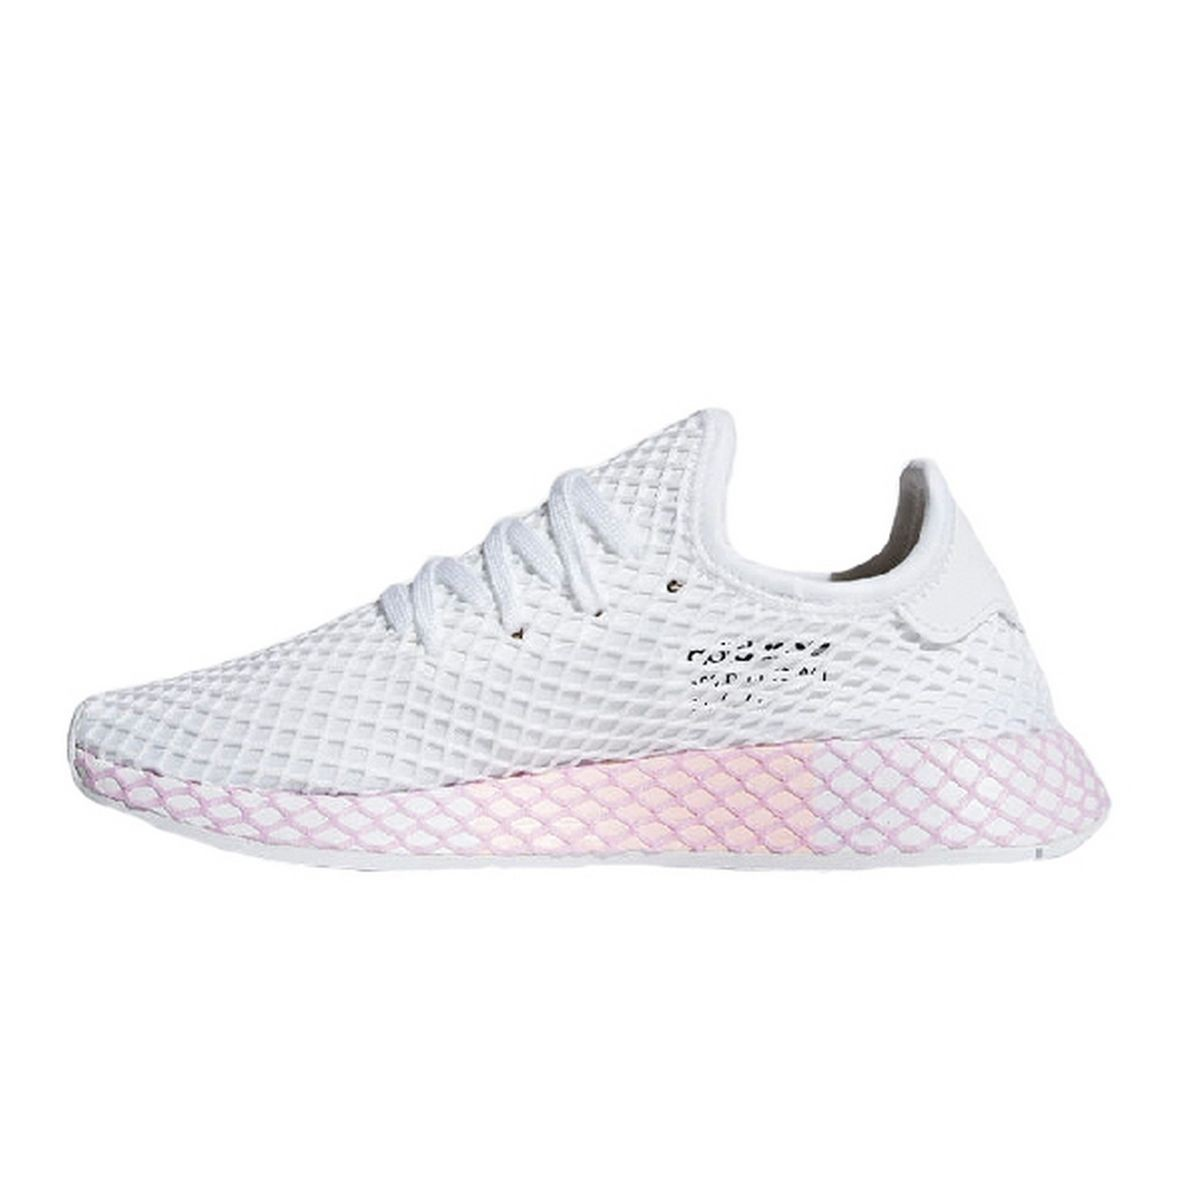 Baskets Deerupt Runner Taille : 37 13;36 23;41 13;36;38